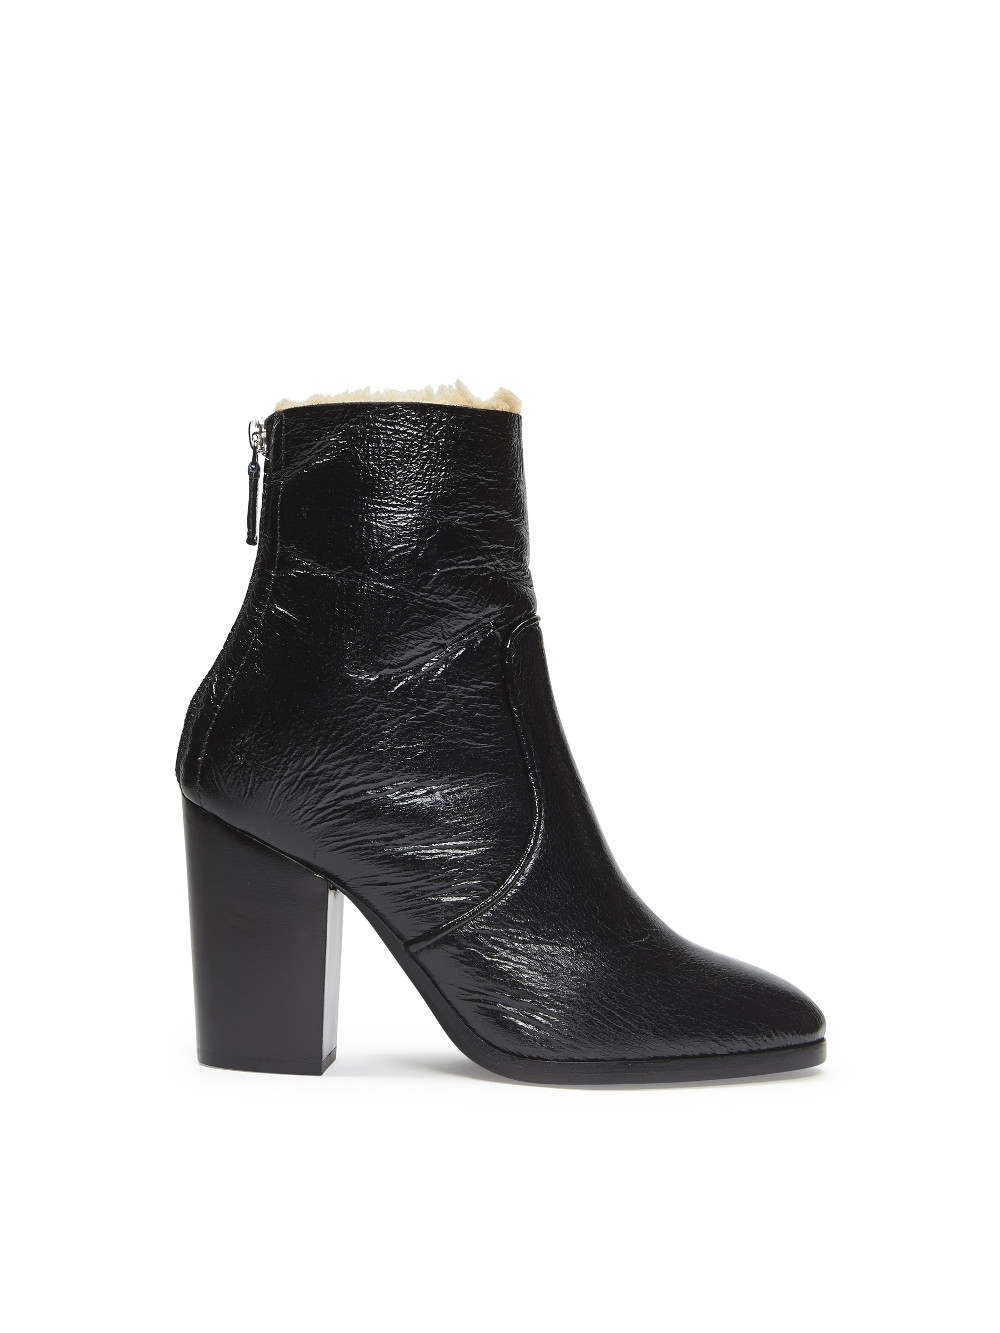 Bottines Neroli - Laurence Dacade